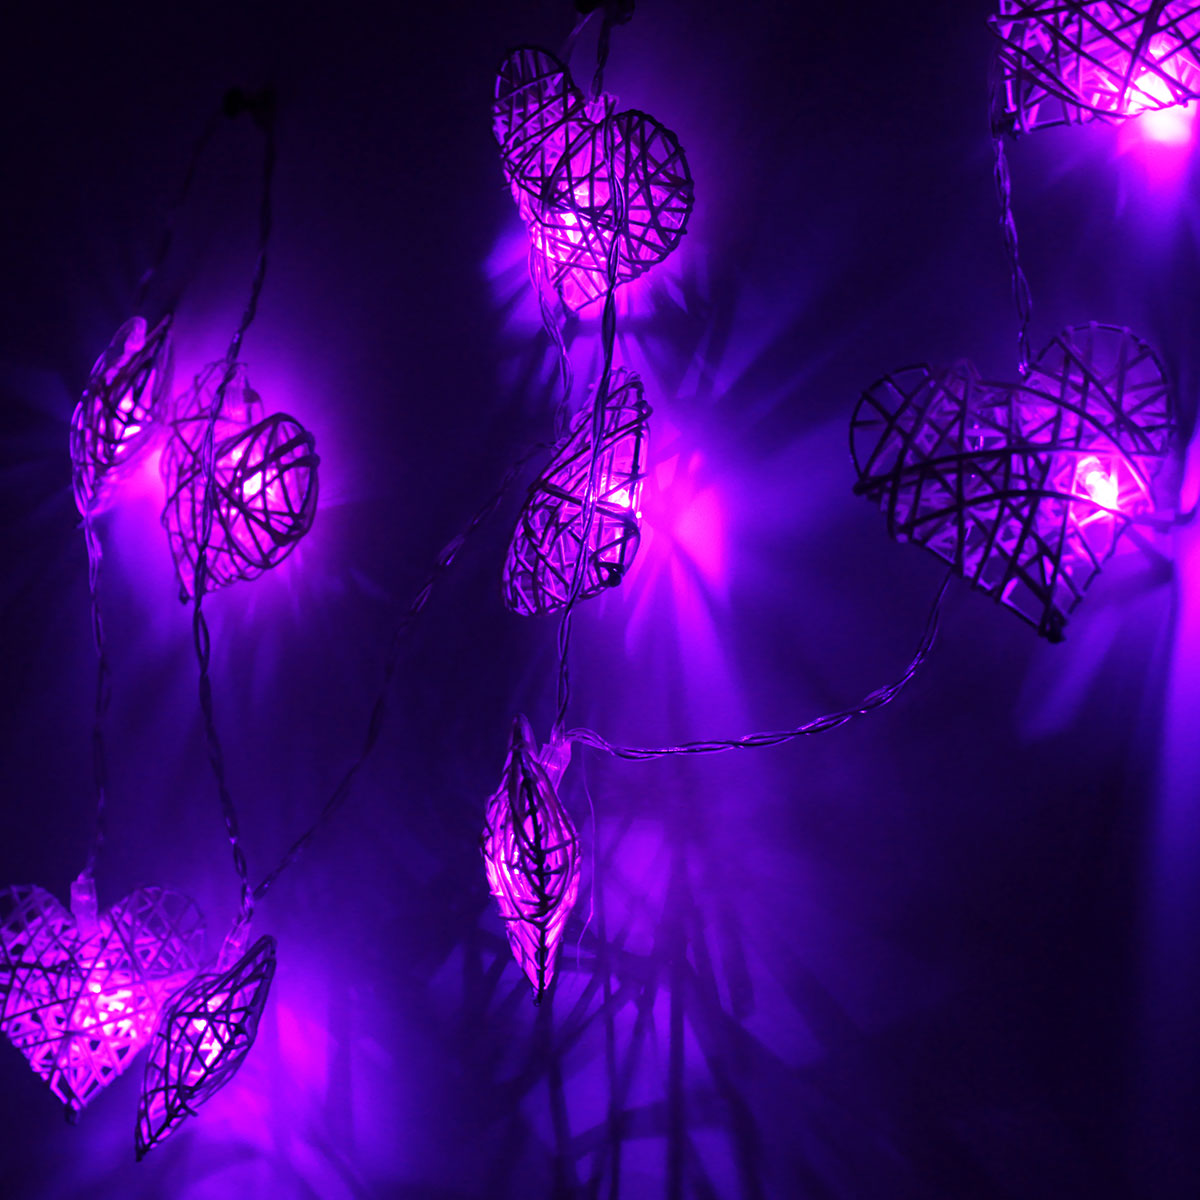 Rattan Hearts String Lights : 10 LED Rattan Heart String Fairy Lights Lamp Party Home Bedroom Xmas Wedding Decor Alex NLD